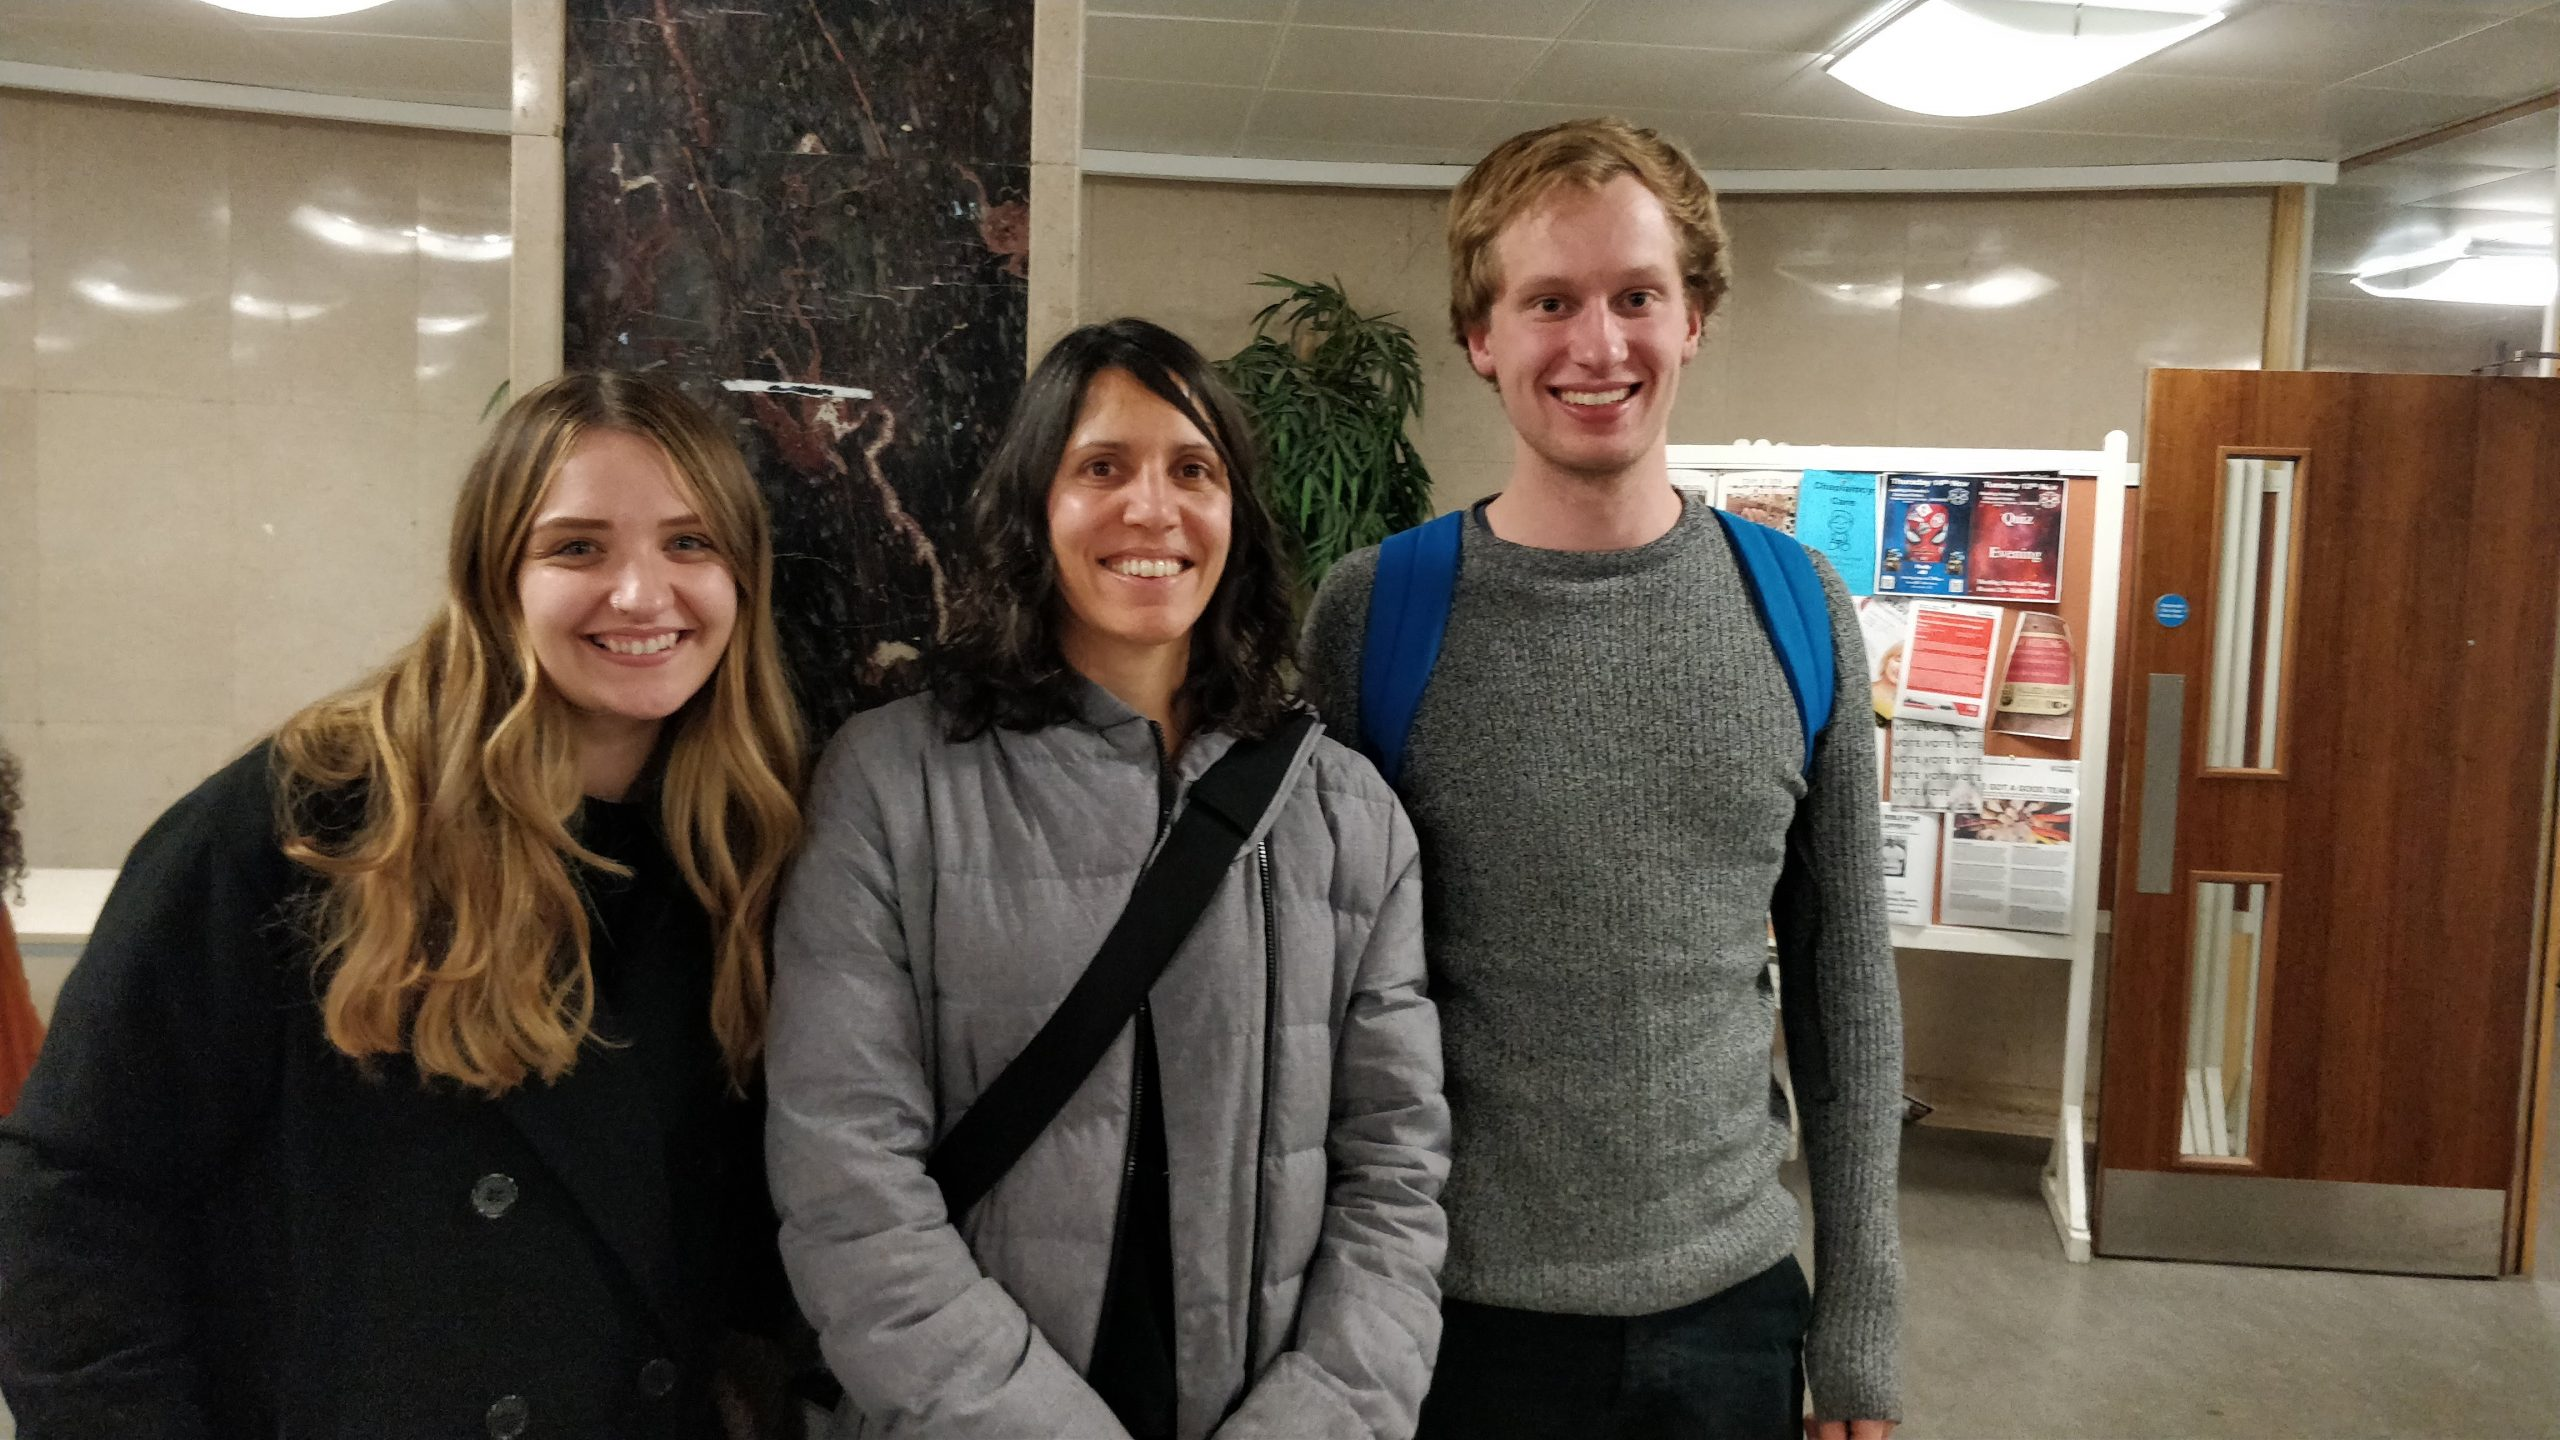 NEWS – Three UROP undergraduate students working on IoE research projects presented their research poster at the Undergraduate Research Showcase event